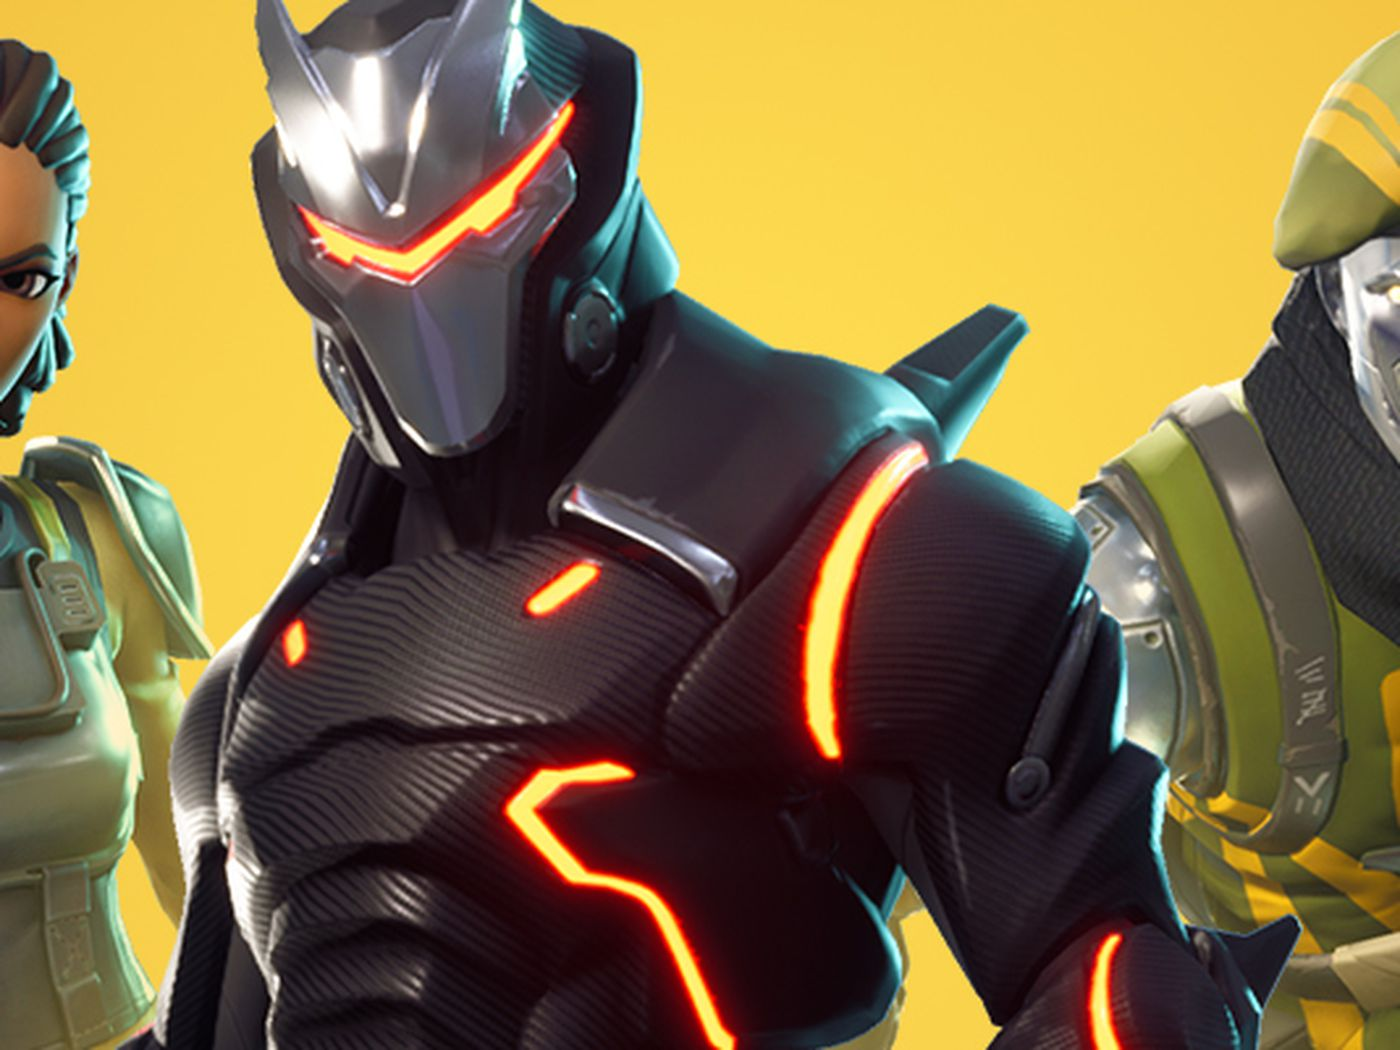 Epic announces the 2019 Fortnite World Cup event - Polygon